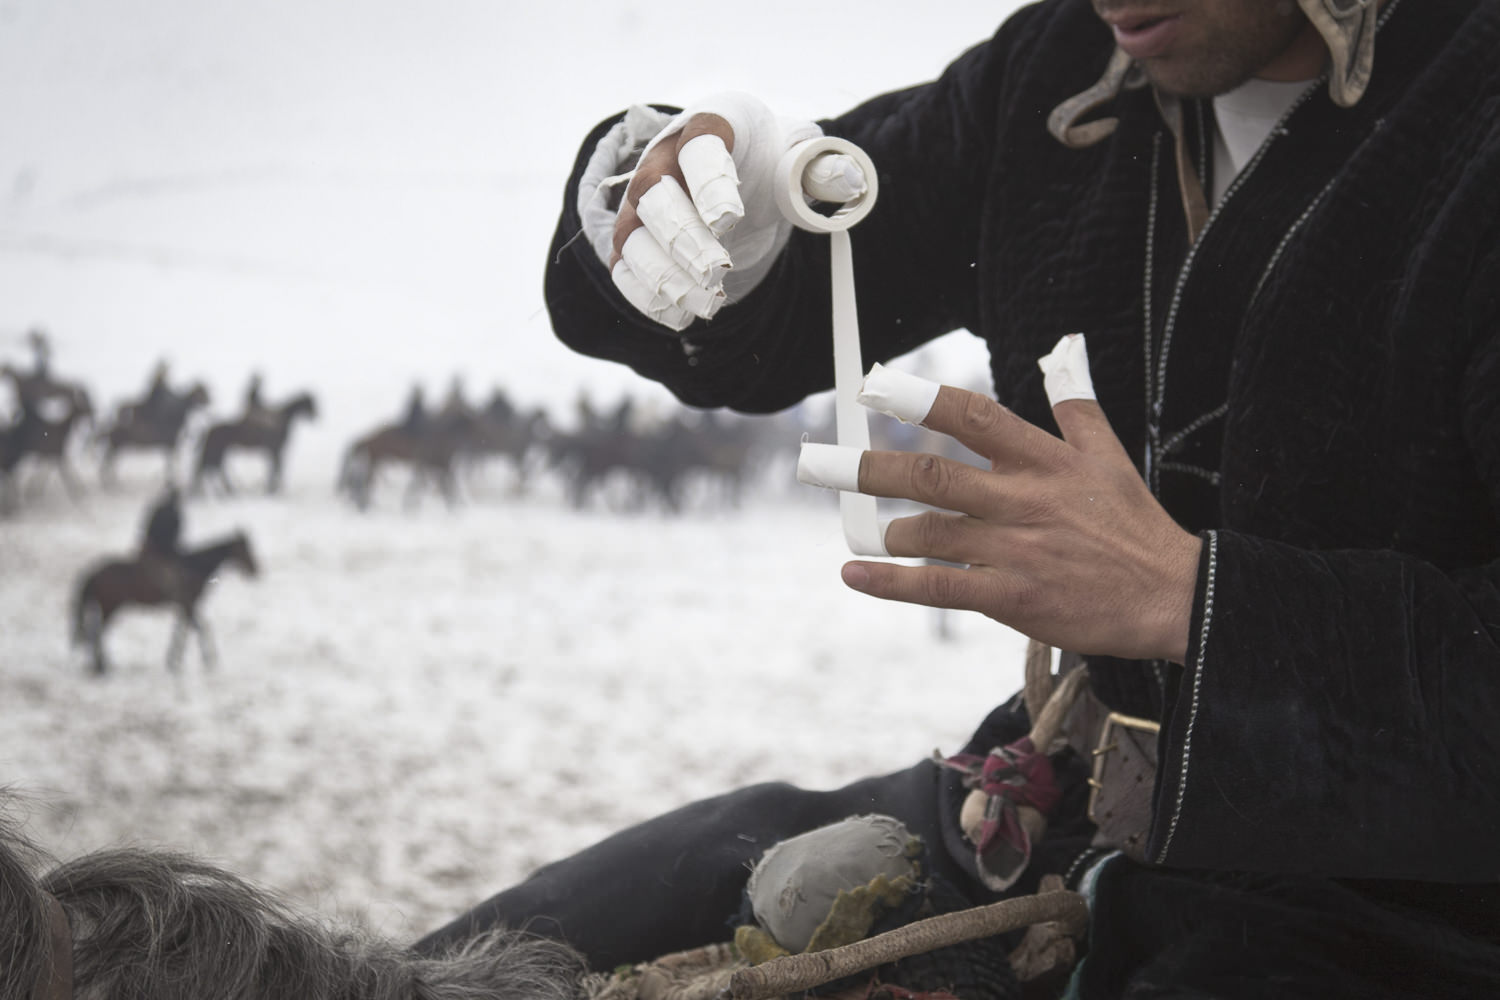 Between rounds, a buzkashi rider tapes up his hands to improve his grip, stave off the cold and ward off brutal whips from other players. Popular throughout much of Central Asia, buzkashi is a form of horse polo in which horseback players wrestle a goat carcass across a playing field.